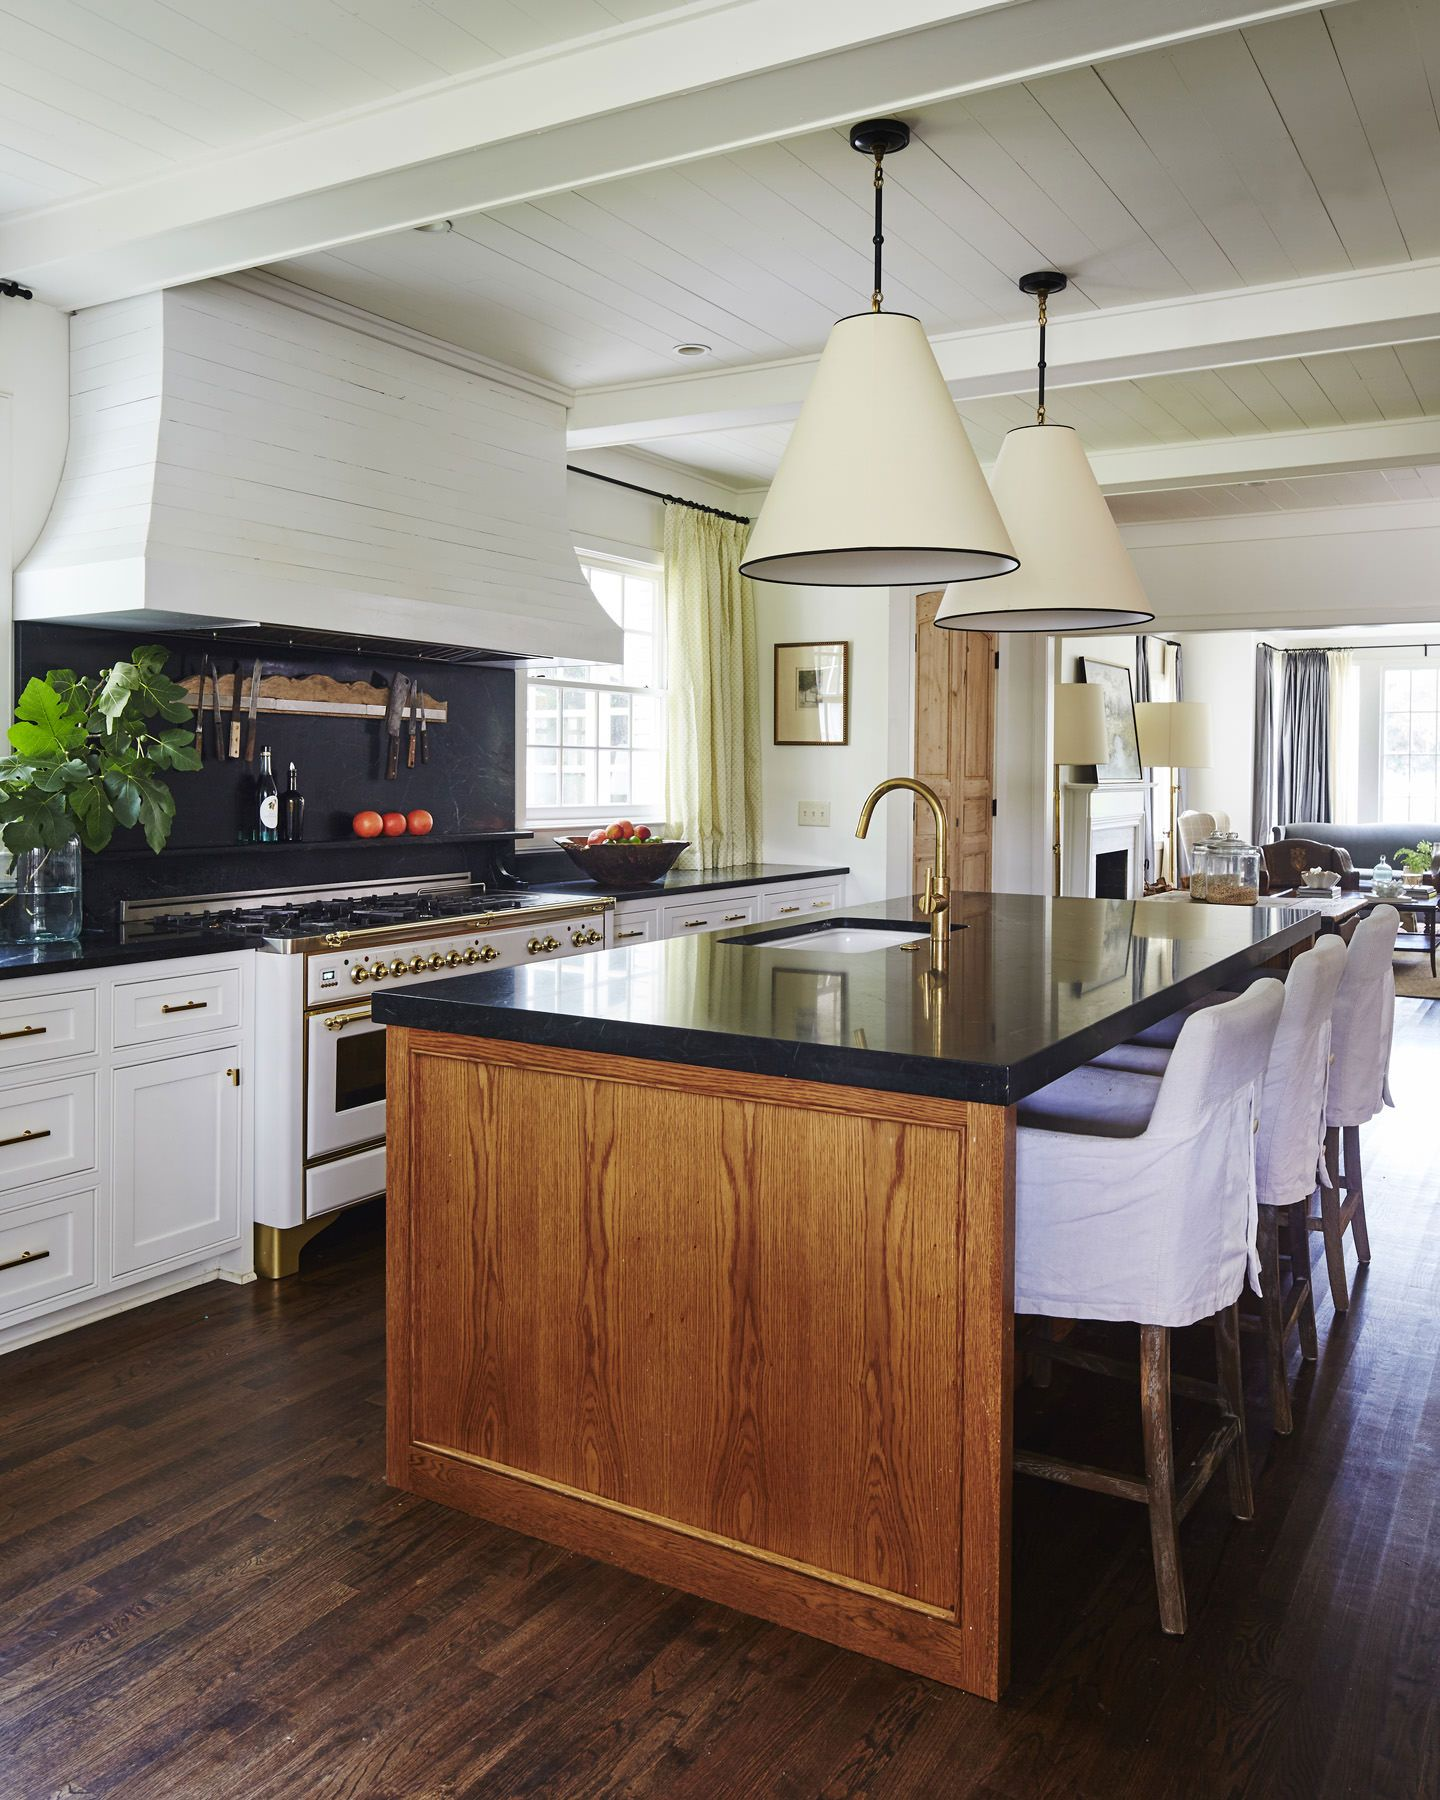 Natural Wood Kitchen Designs: Ashley Gilbreath. White Cabinetry, Natural Wood Island